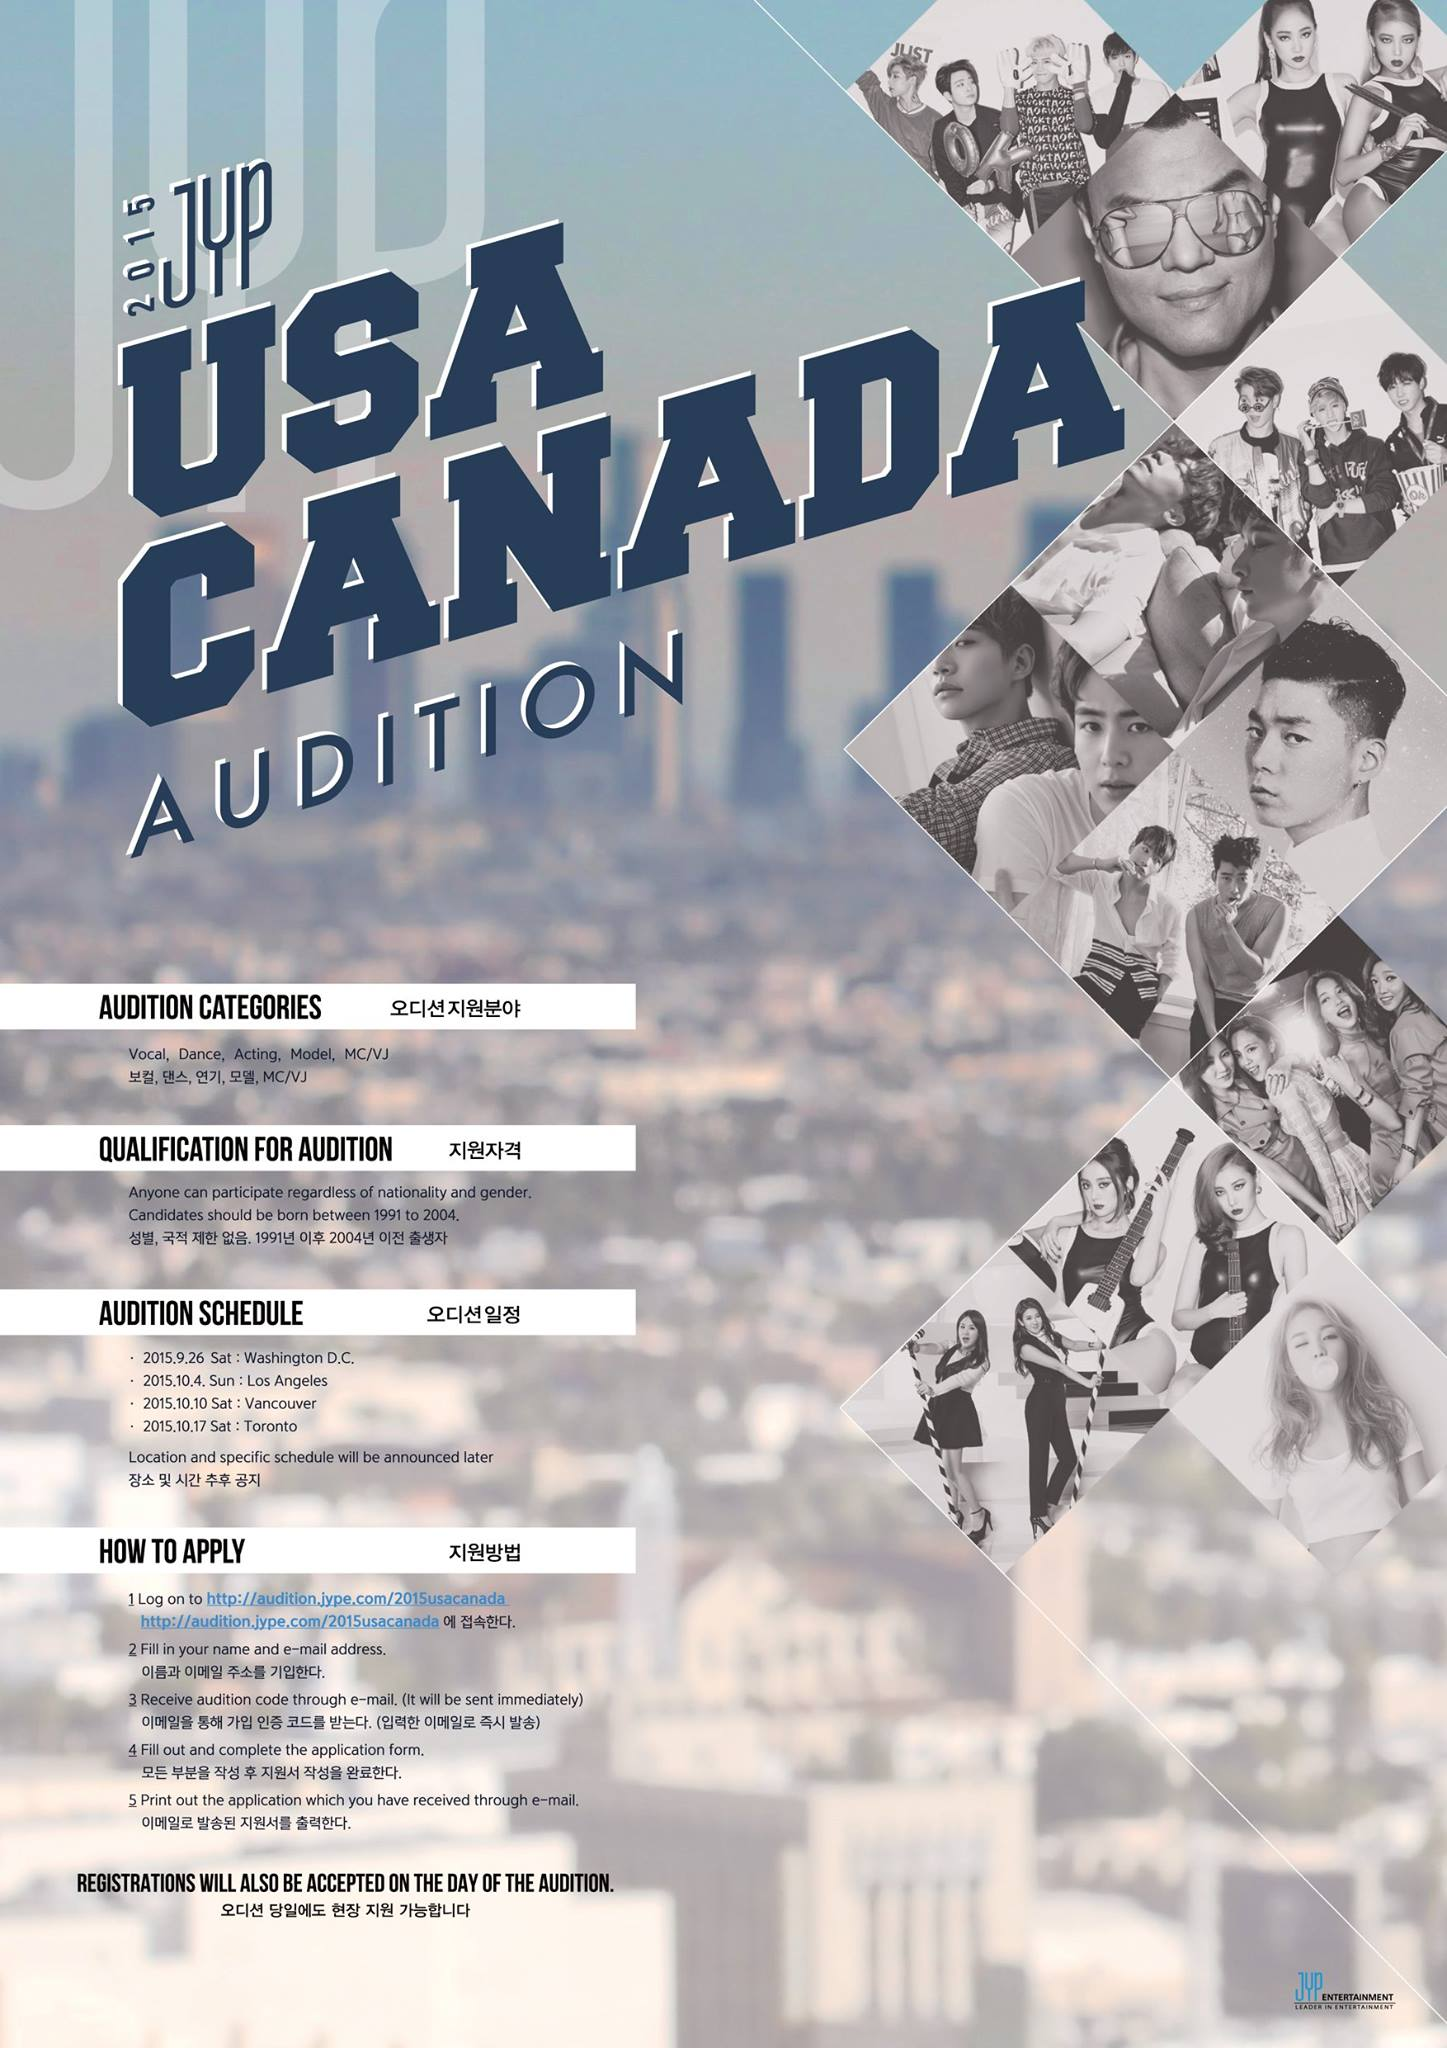 JYP Announces U S  and Canada Auditions! | Nutty Nomads